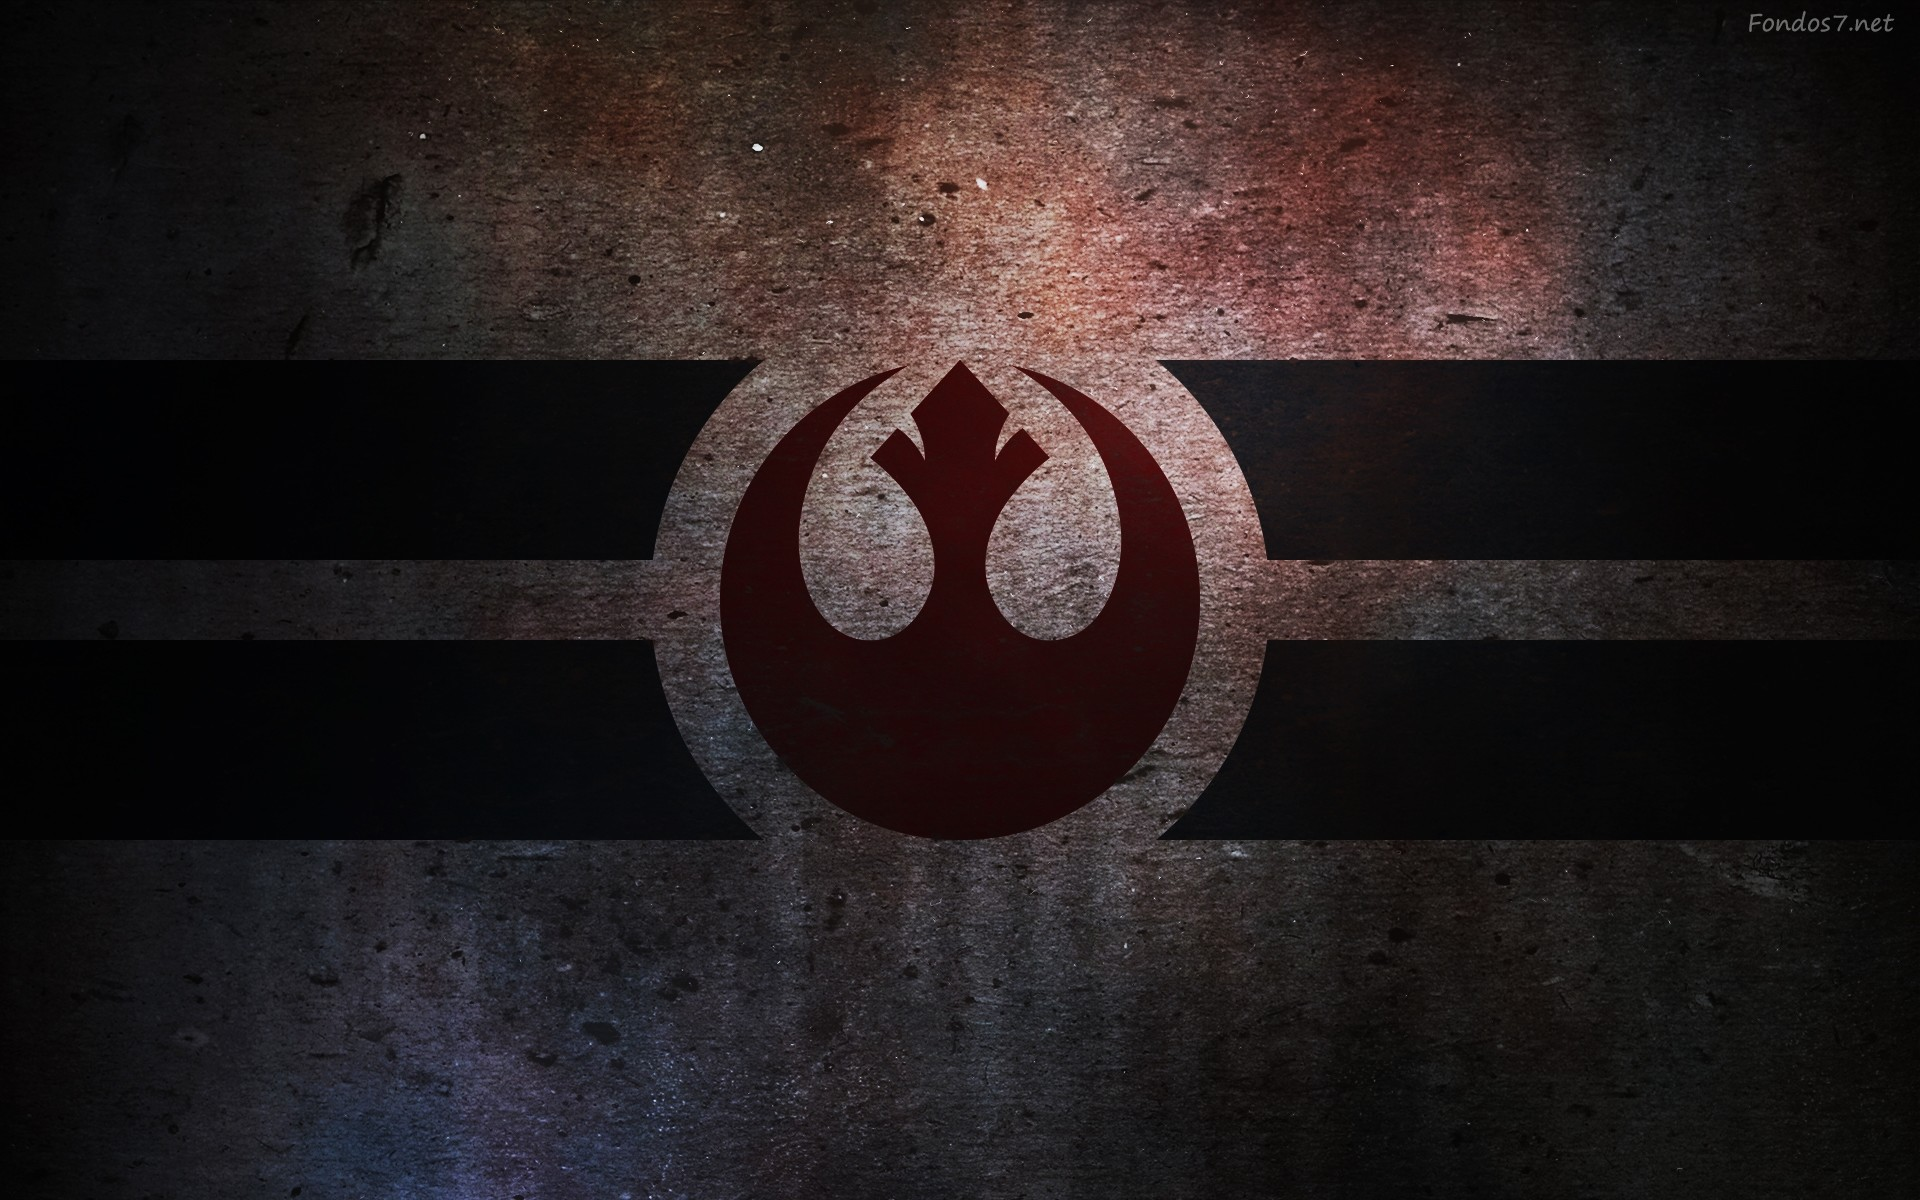 Star Wars Rebels Wallpaper 80 Images